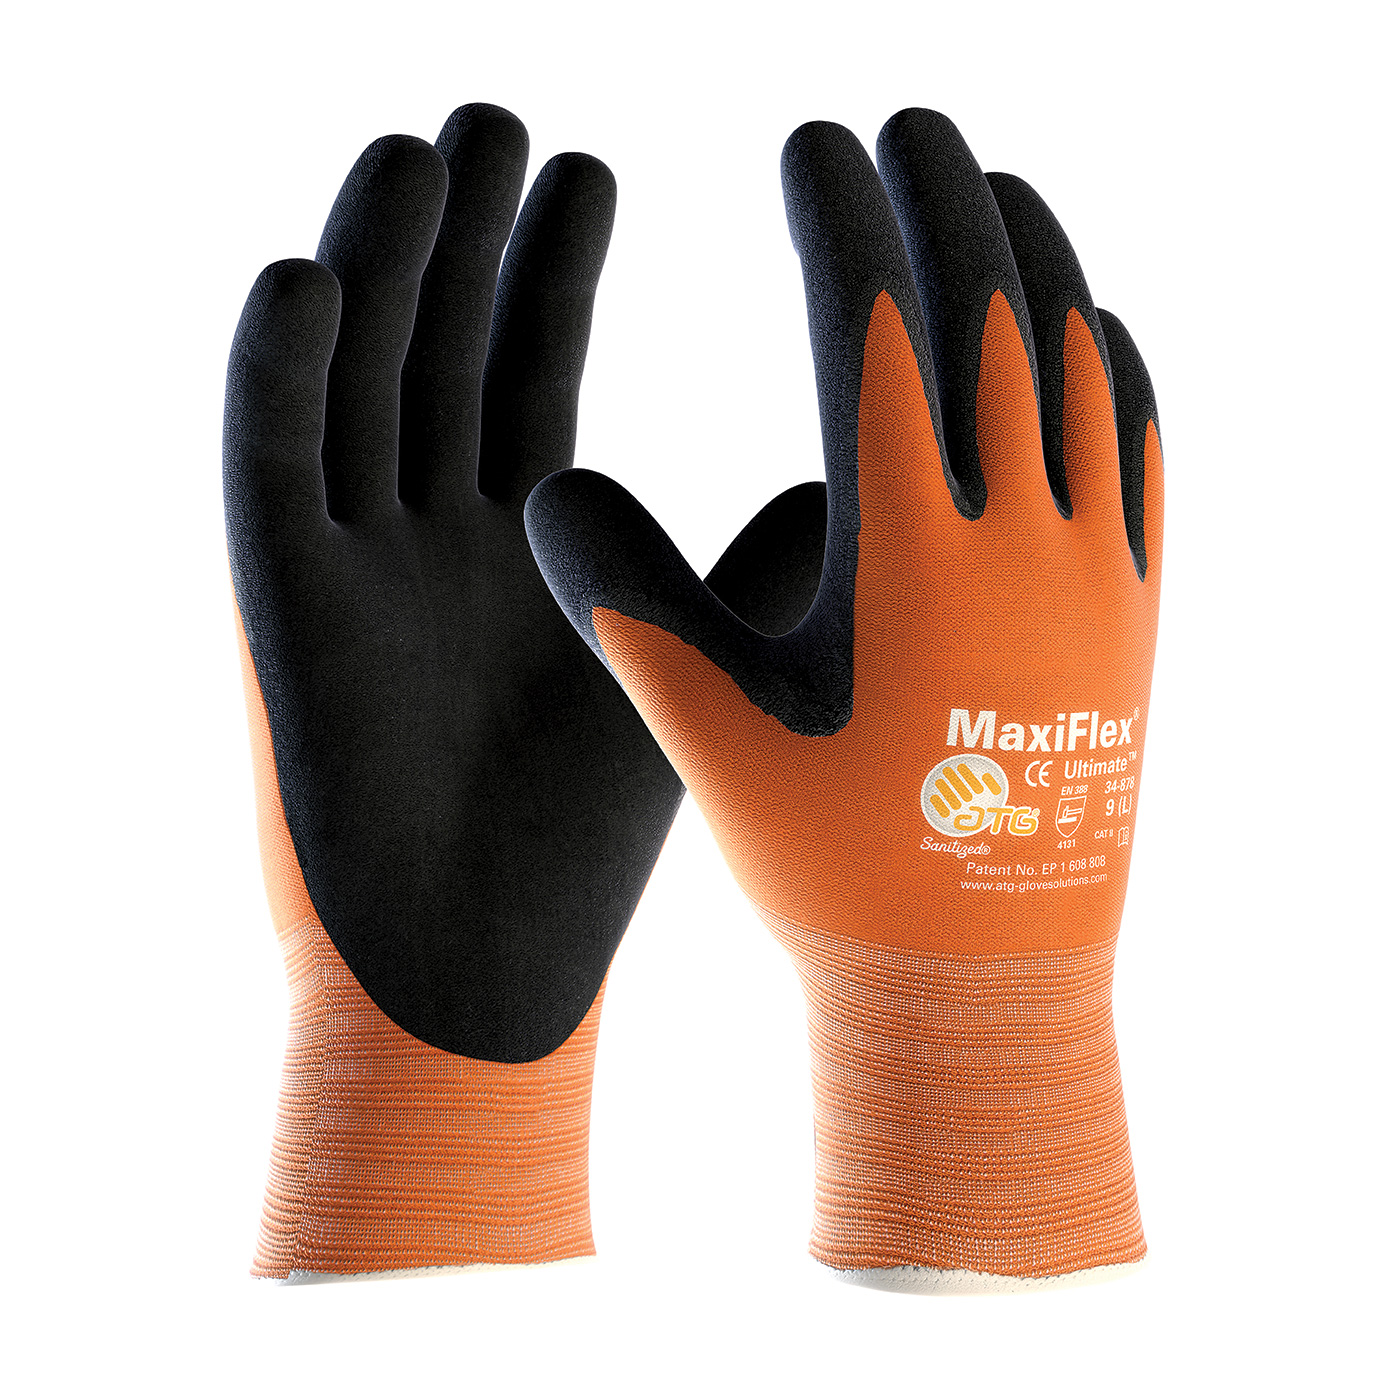 PIP® MaxiFlex® Ultimate™  Hi-Vis Seamless Knit Nylon Glove with Nitrile Coated MicroFoam Grip on Palm & Fingers #34-8014